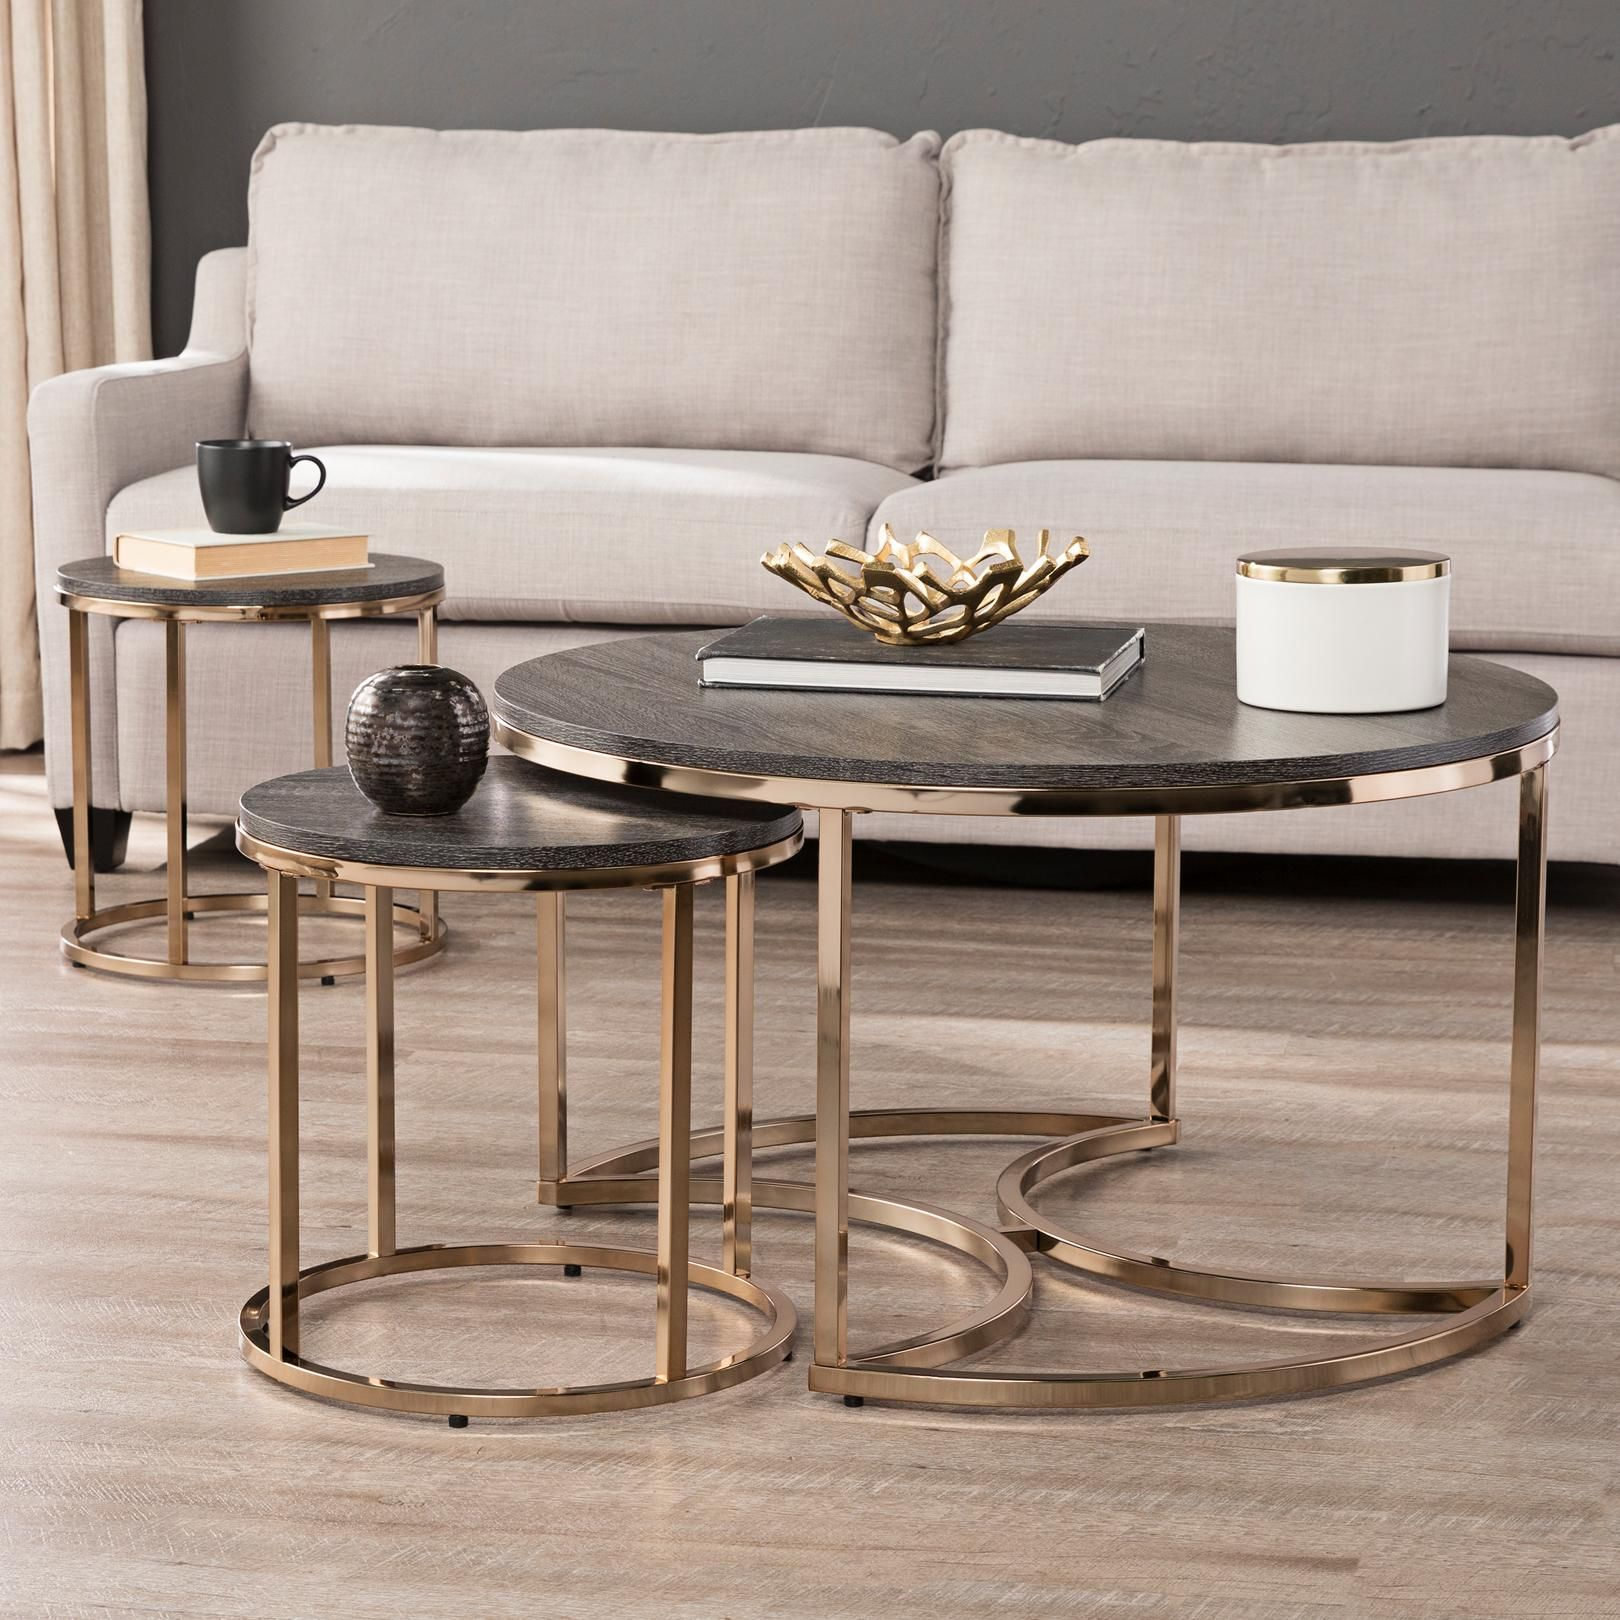 Tables Lachlan 32 Wide Espresso 3 Piece Round Nesting Tables Set In 2020 Center Table Living Room Nesting Tables Living Room Living Room Table Sets